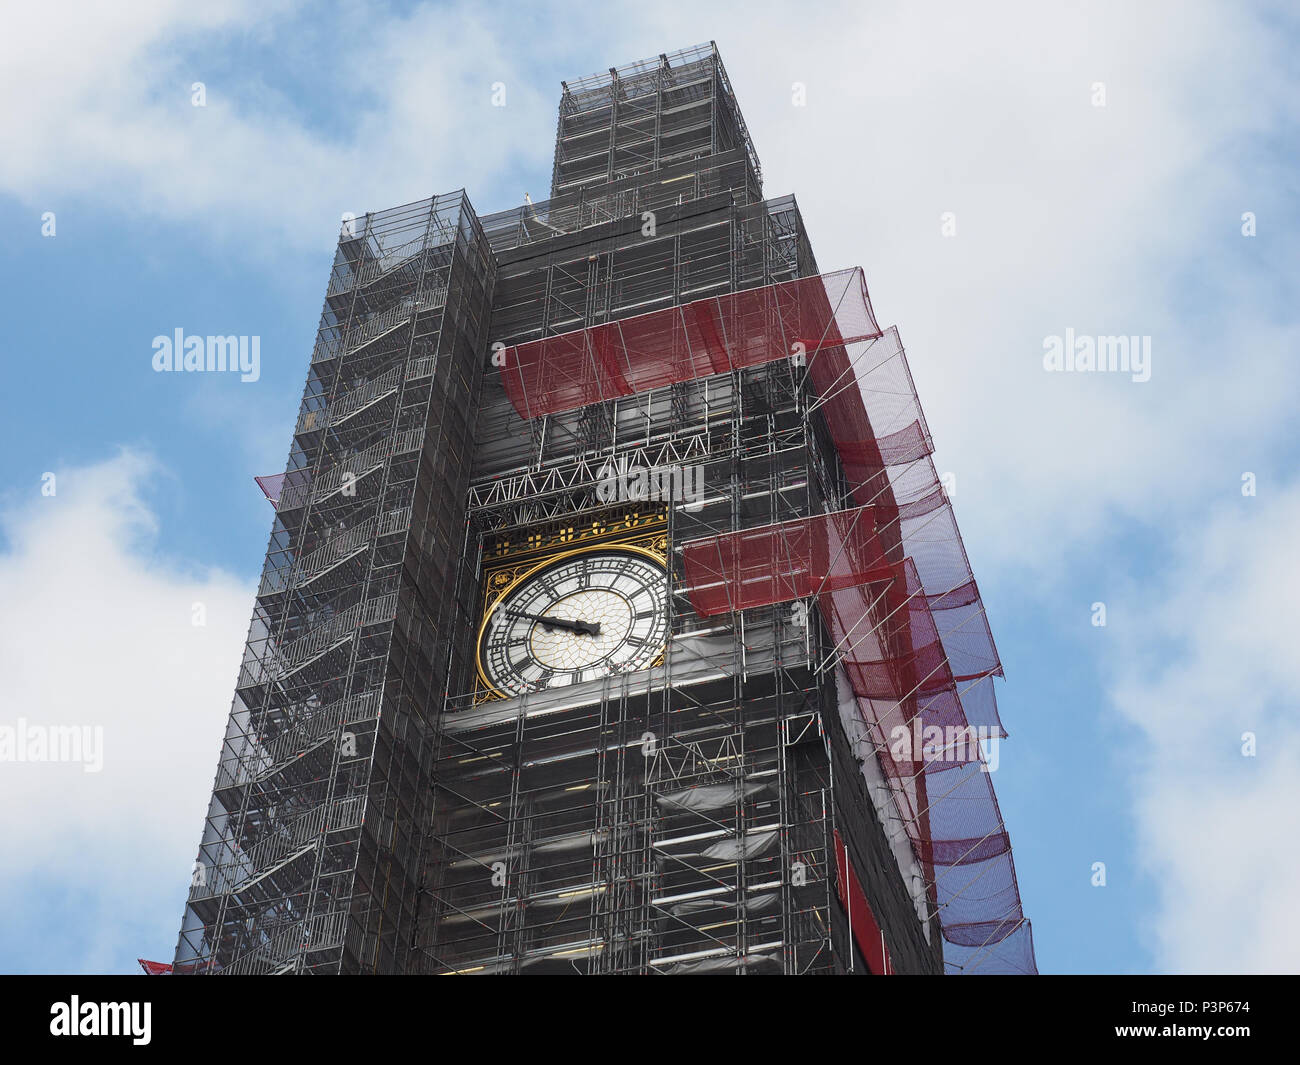 Big Ben Conservation Works At The Houses Of Parliament Aka Westminster Palace In London Uk Stock Photo Alamy